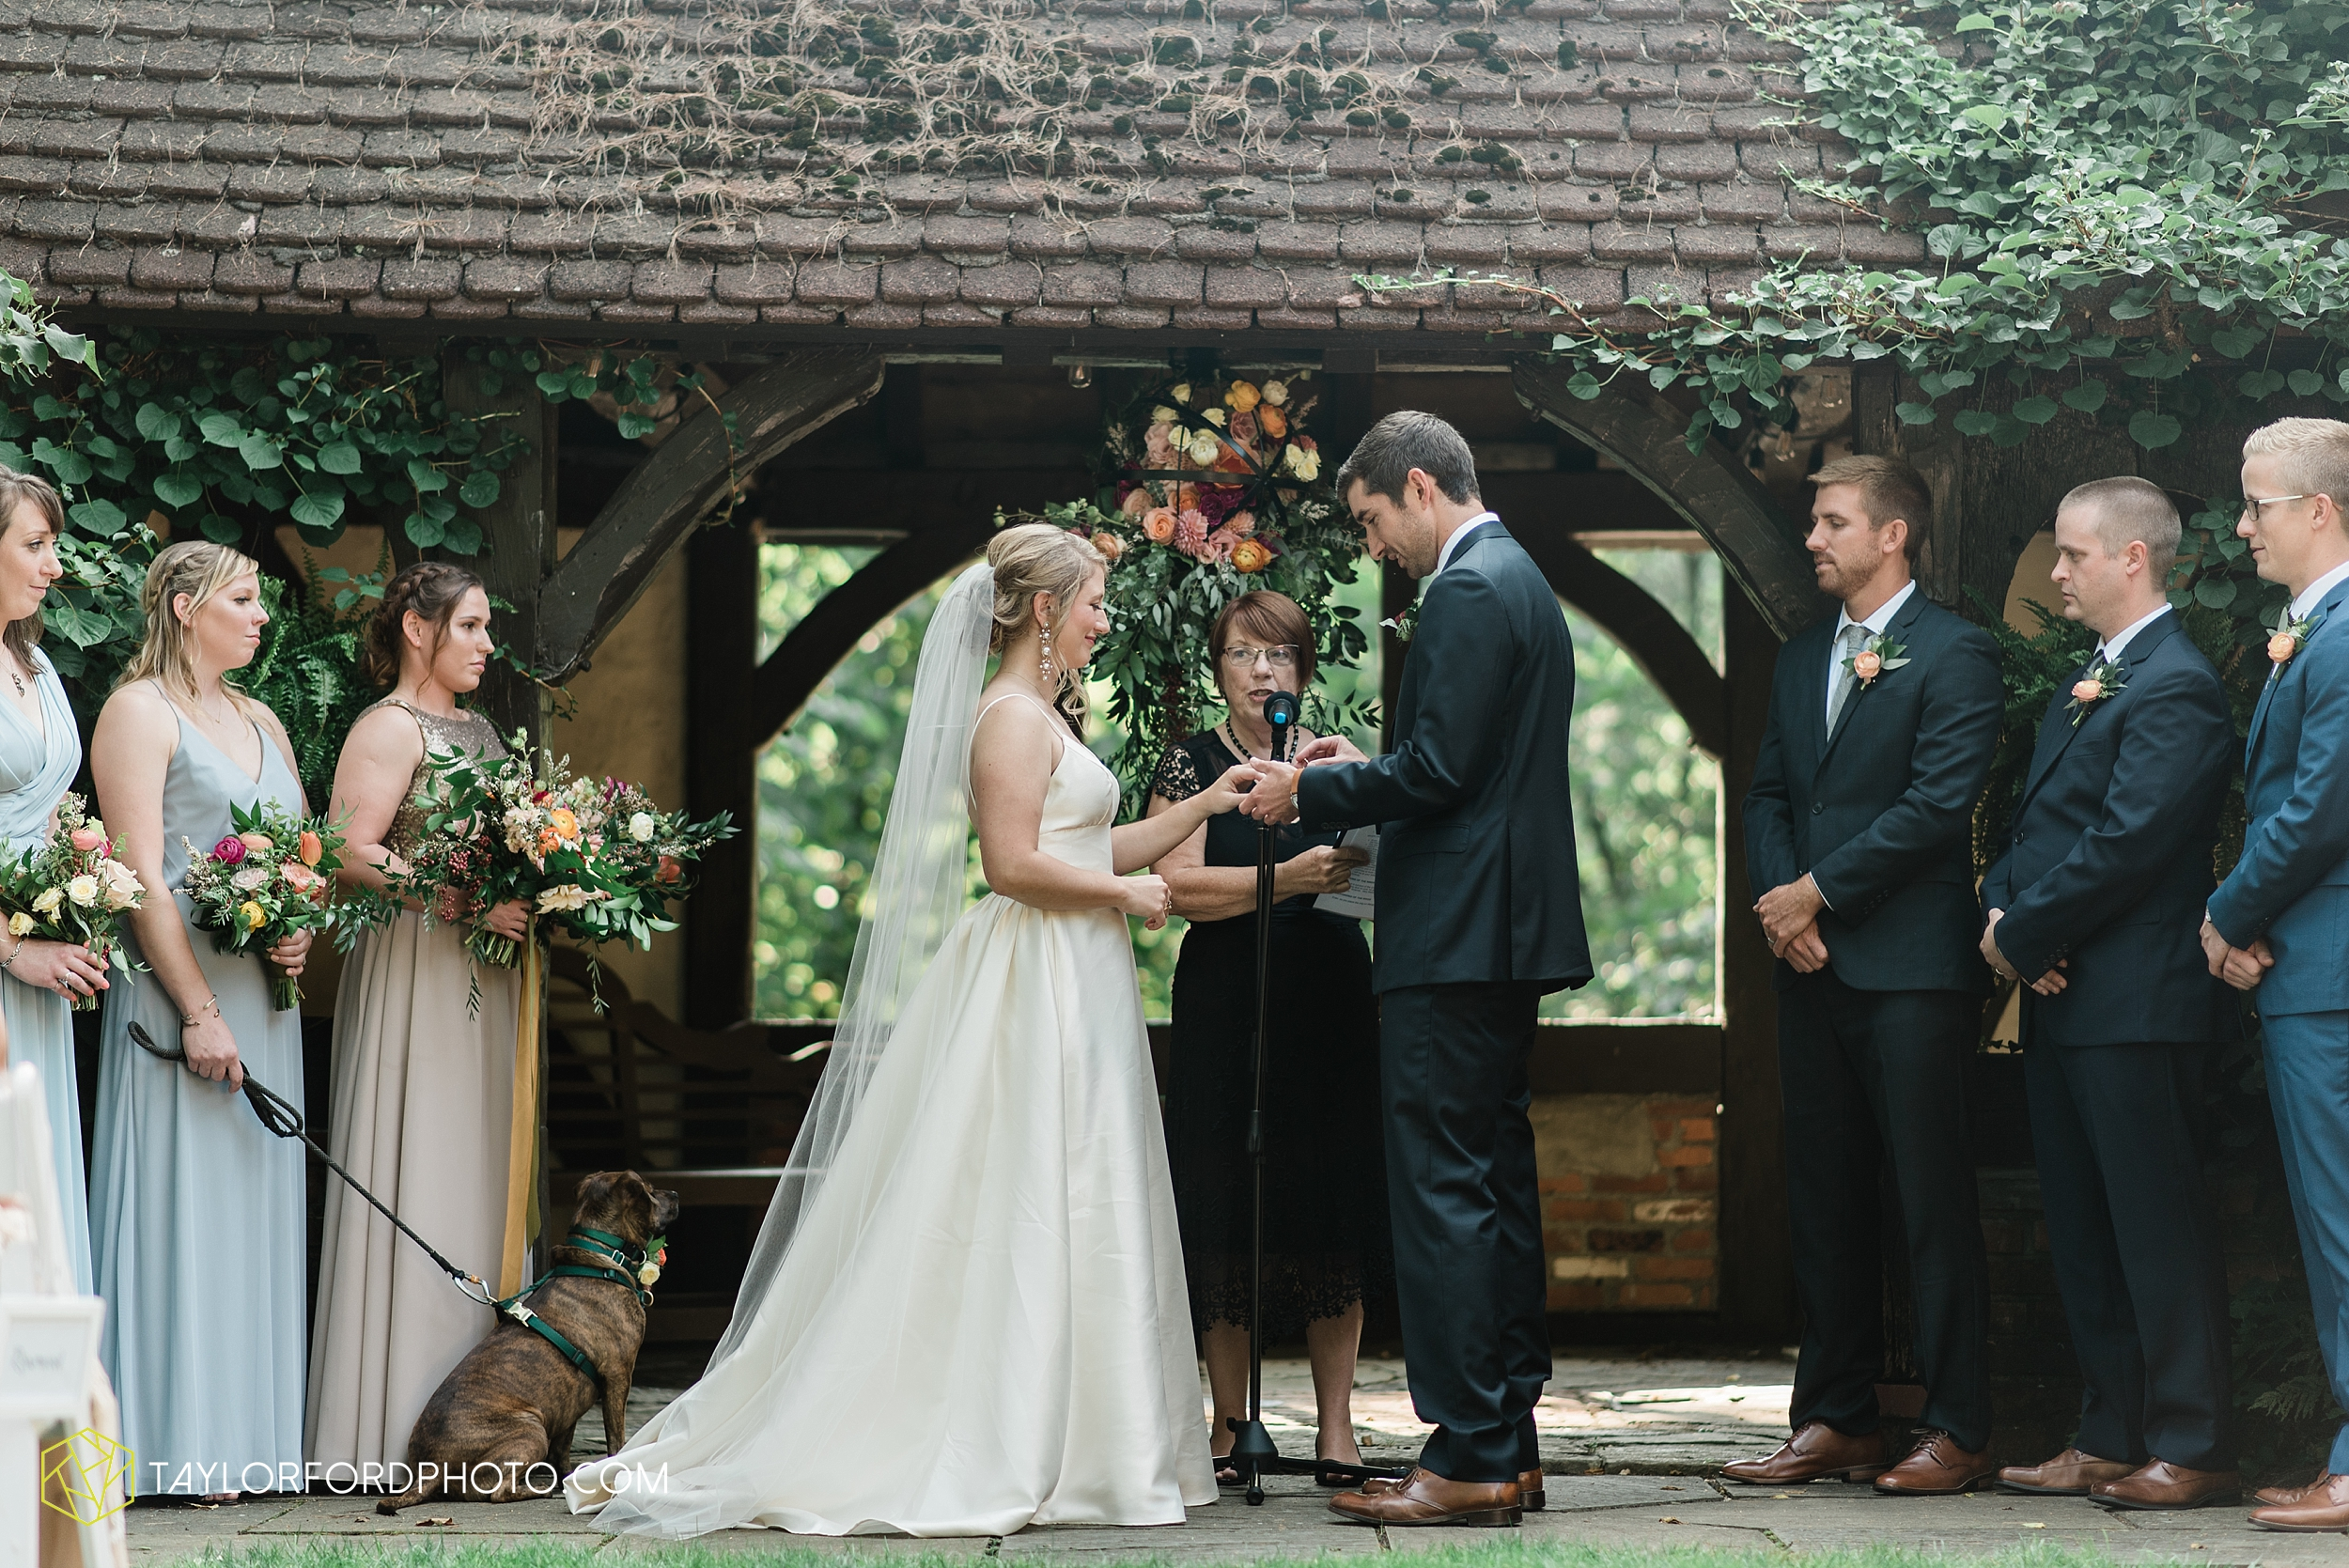 margot-may-evan-kohler-club-at-hillbrook-cleveland-chagrin-falls-outdoor-wedding-bhldn-gardenview-flowers-toledo-photographer-taylor-ford-photographer_9584.jpg